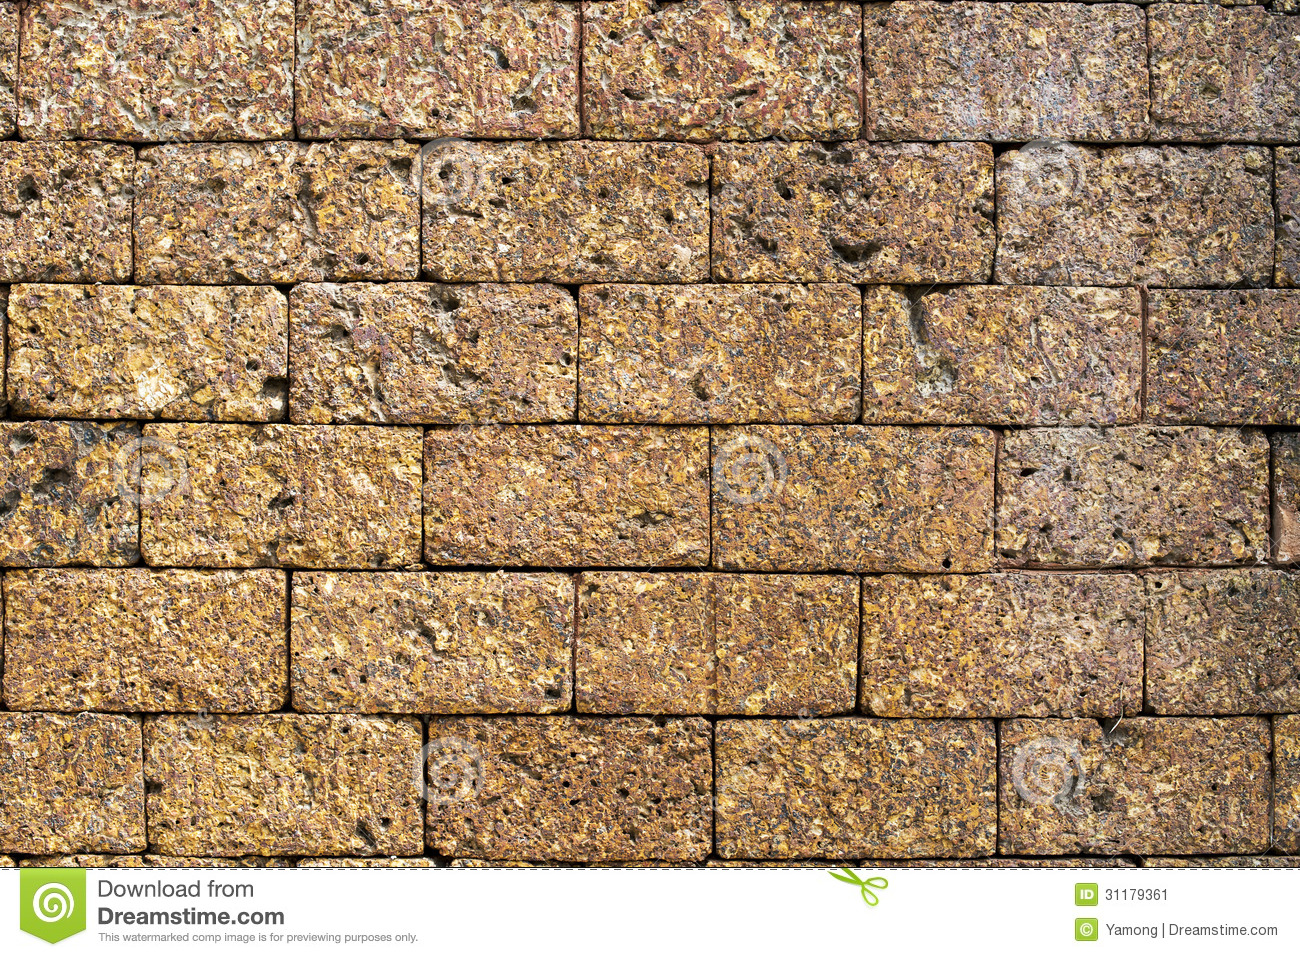 Laterite stone brick wall stock images image 35510874 - Brick Laterite Stone Wall